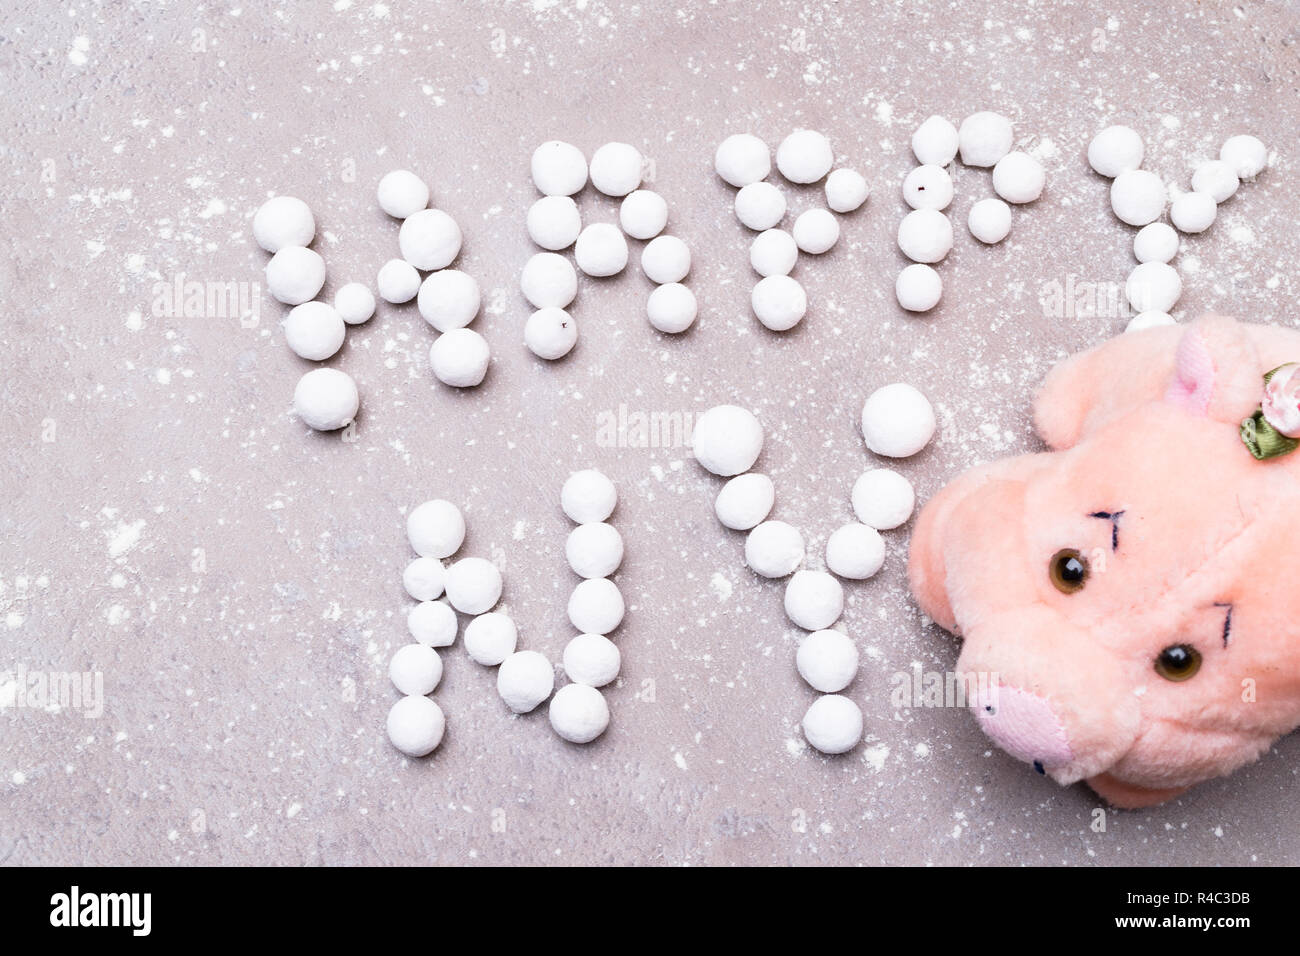 lucky pig with english sweet berry text happy new year english new year greetings snow on background